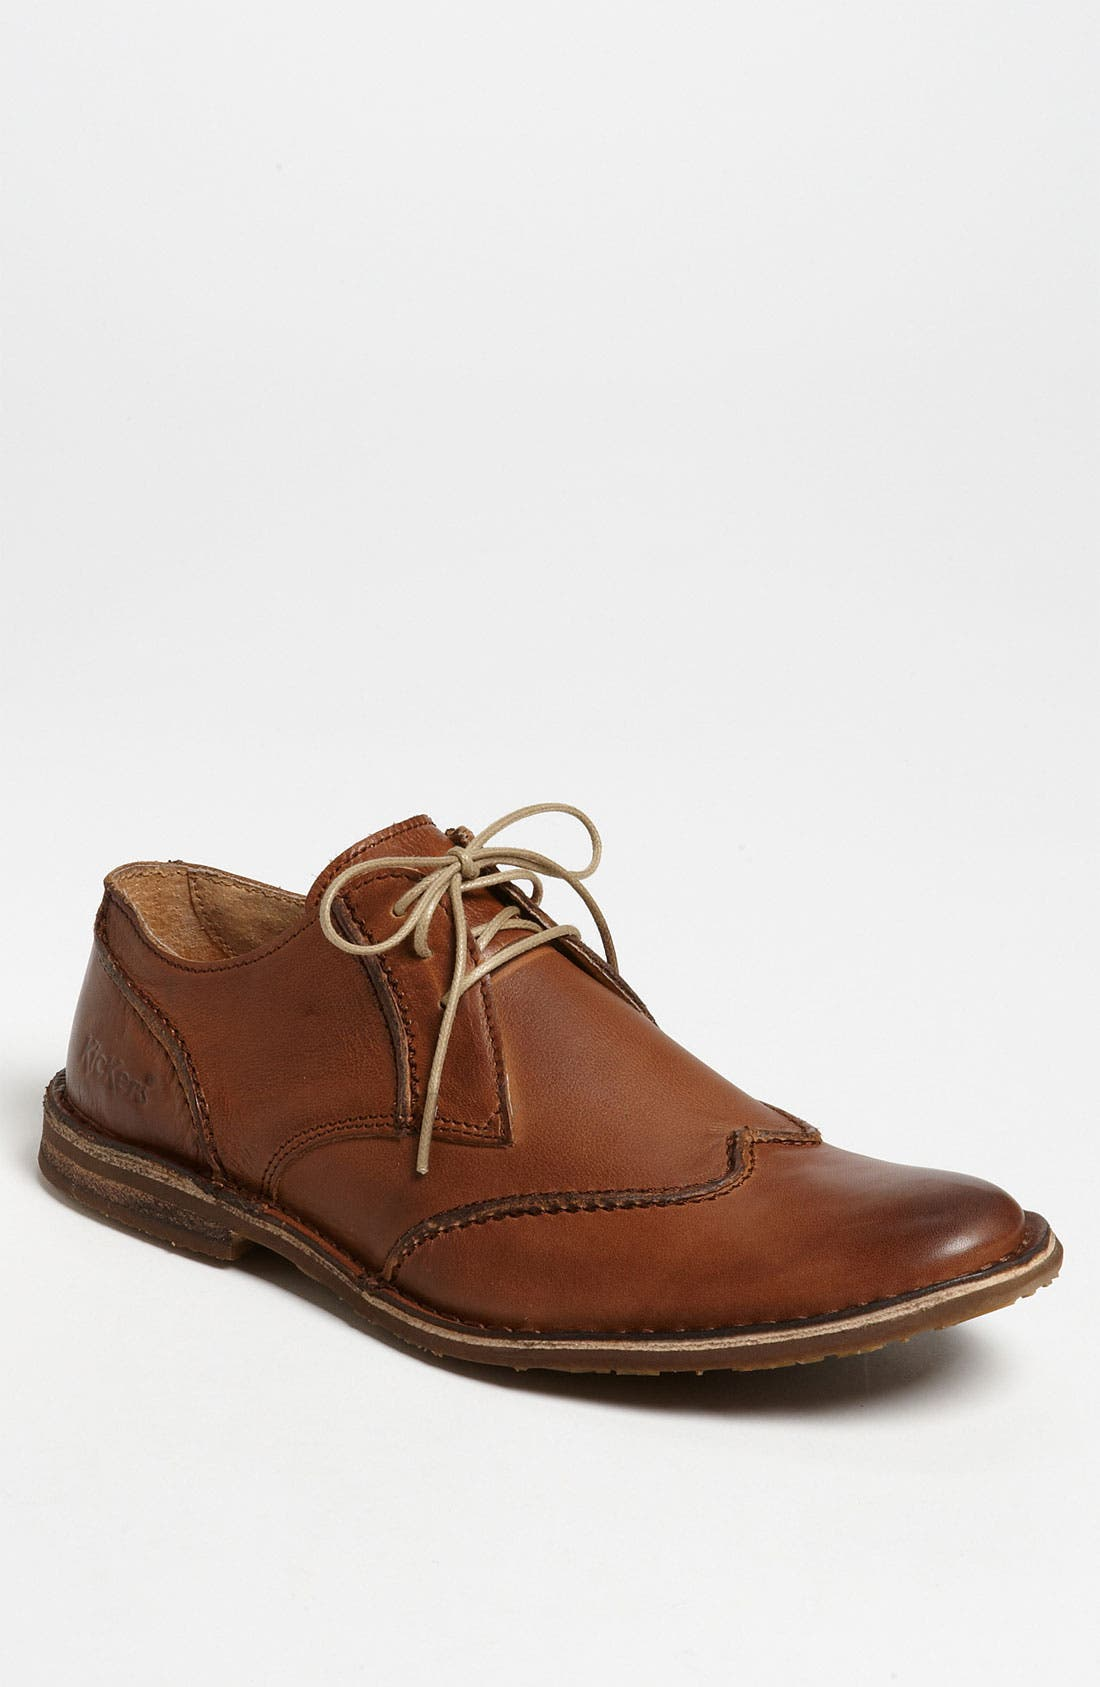 Alternate Image 1 Selected - Kickers 'Citebat' Oxford